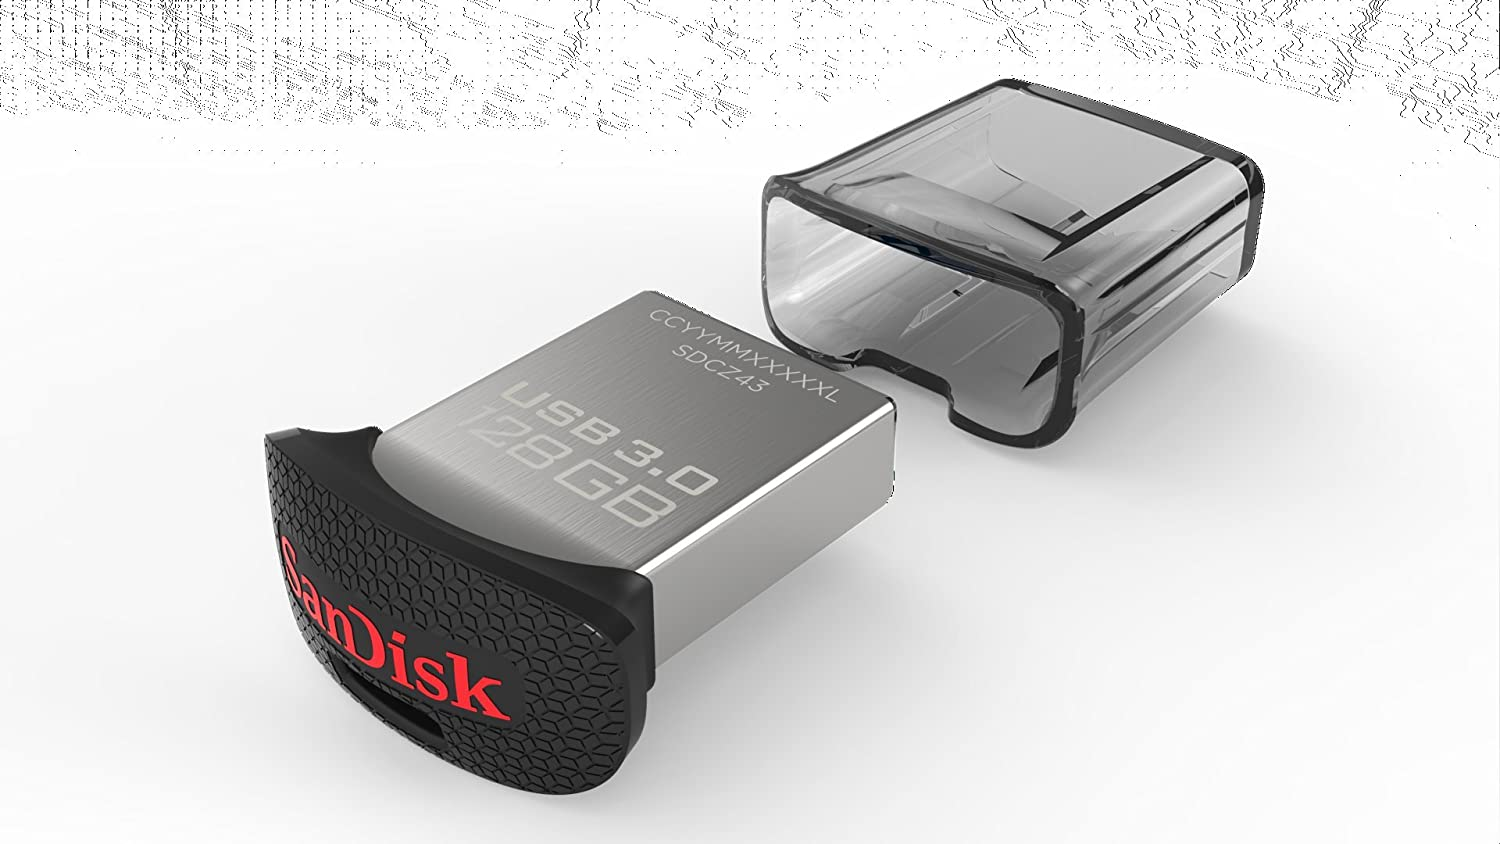 SanDisk Ultra Fit 128GB USB 3.0 Flash Drive (SDCZ43-128G-GAM46) [Newest Version]